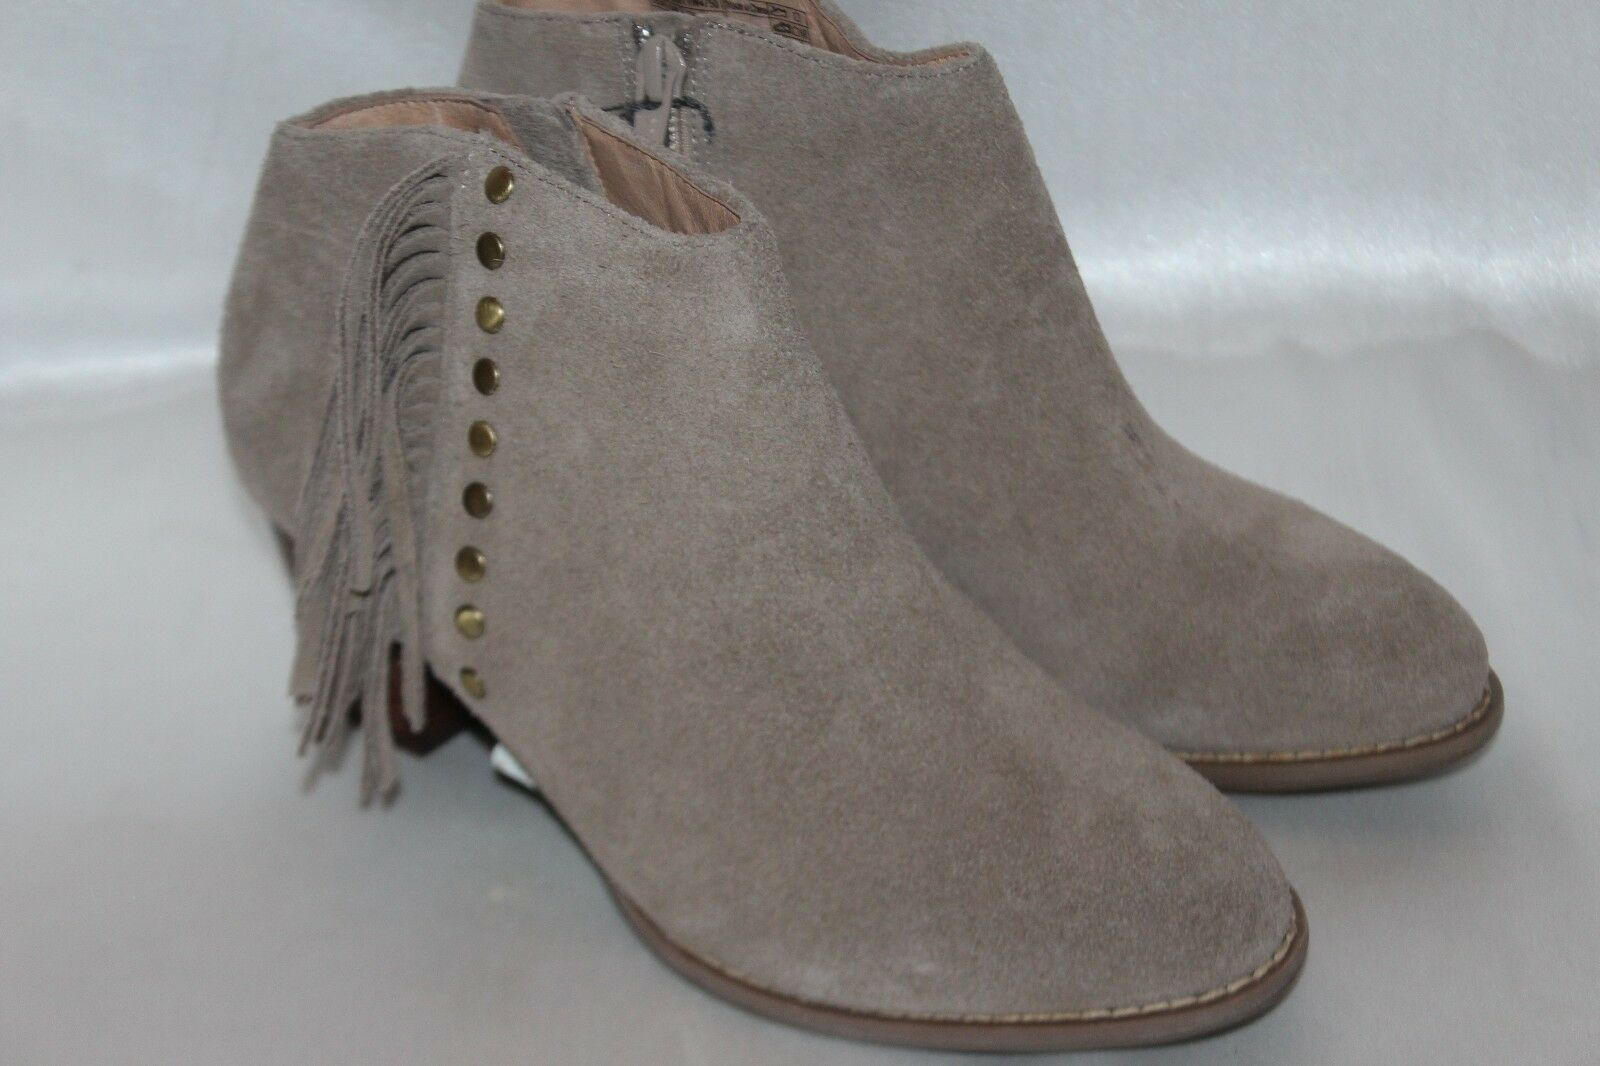 NEW  VIONIC Lt Tan Suede Leather Upright FAROS Zip Fringe Stud Boots Sz 6